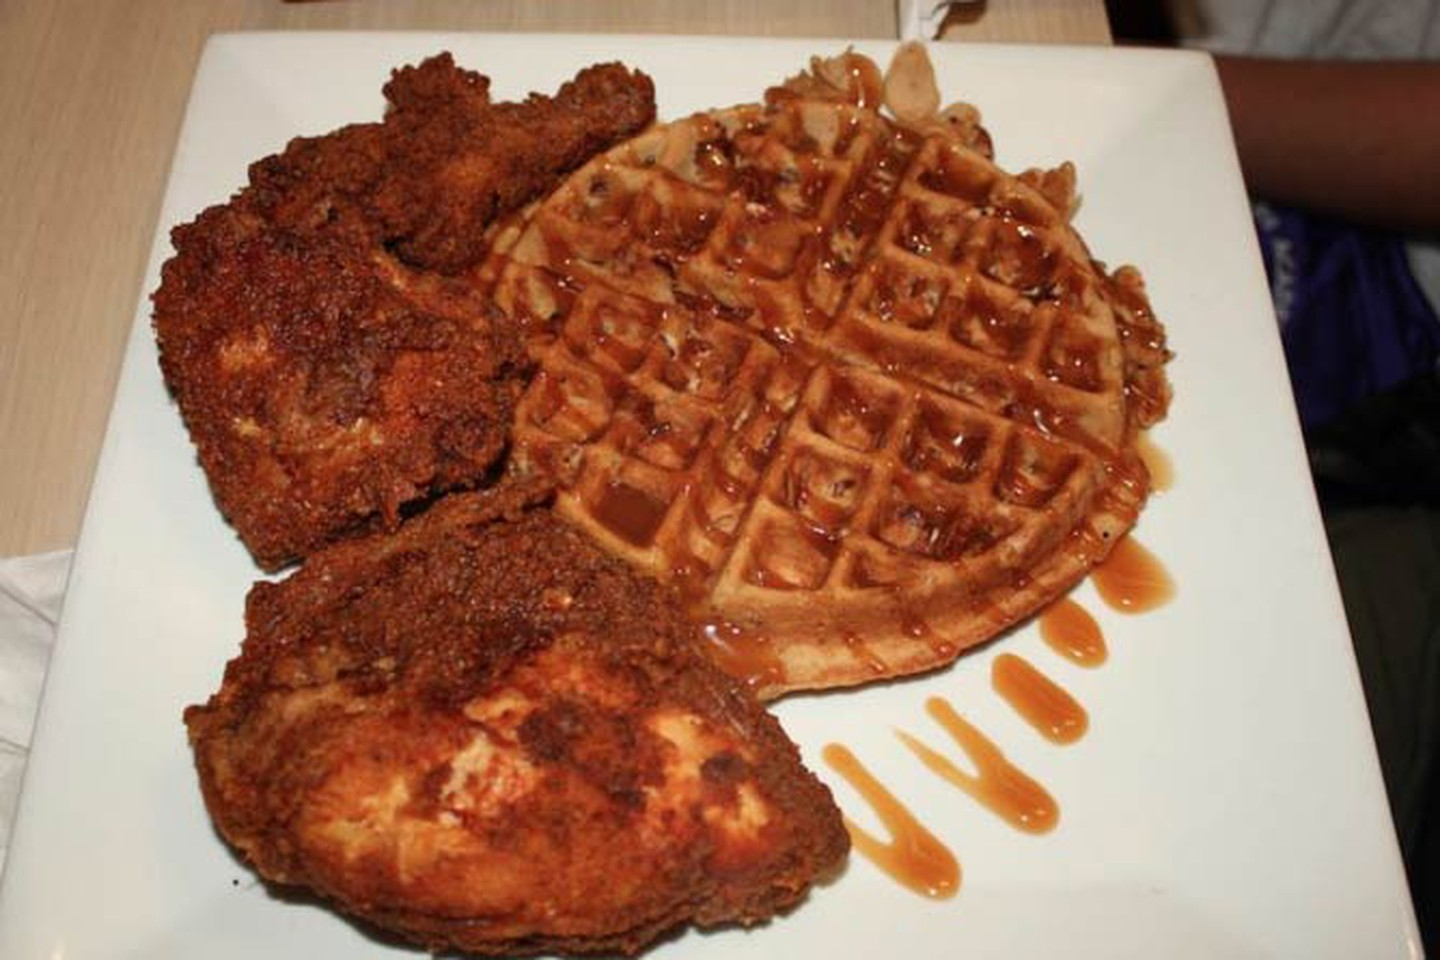 Bay Bay's Chicken & Waffles